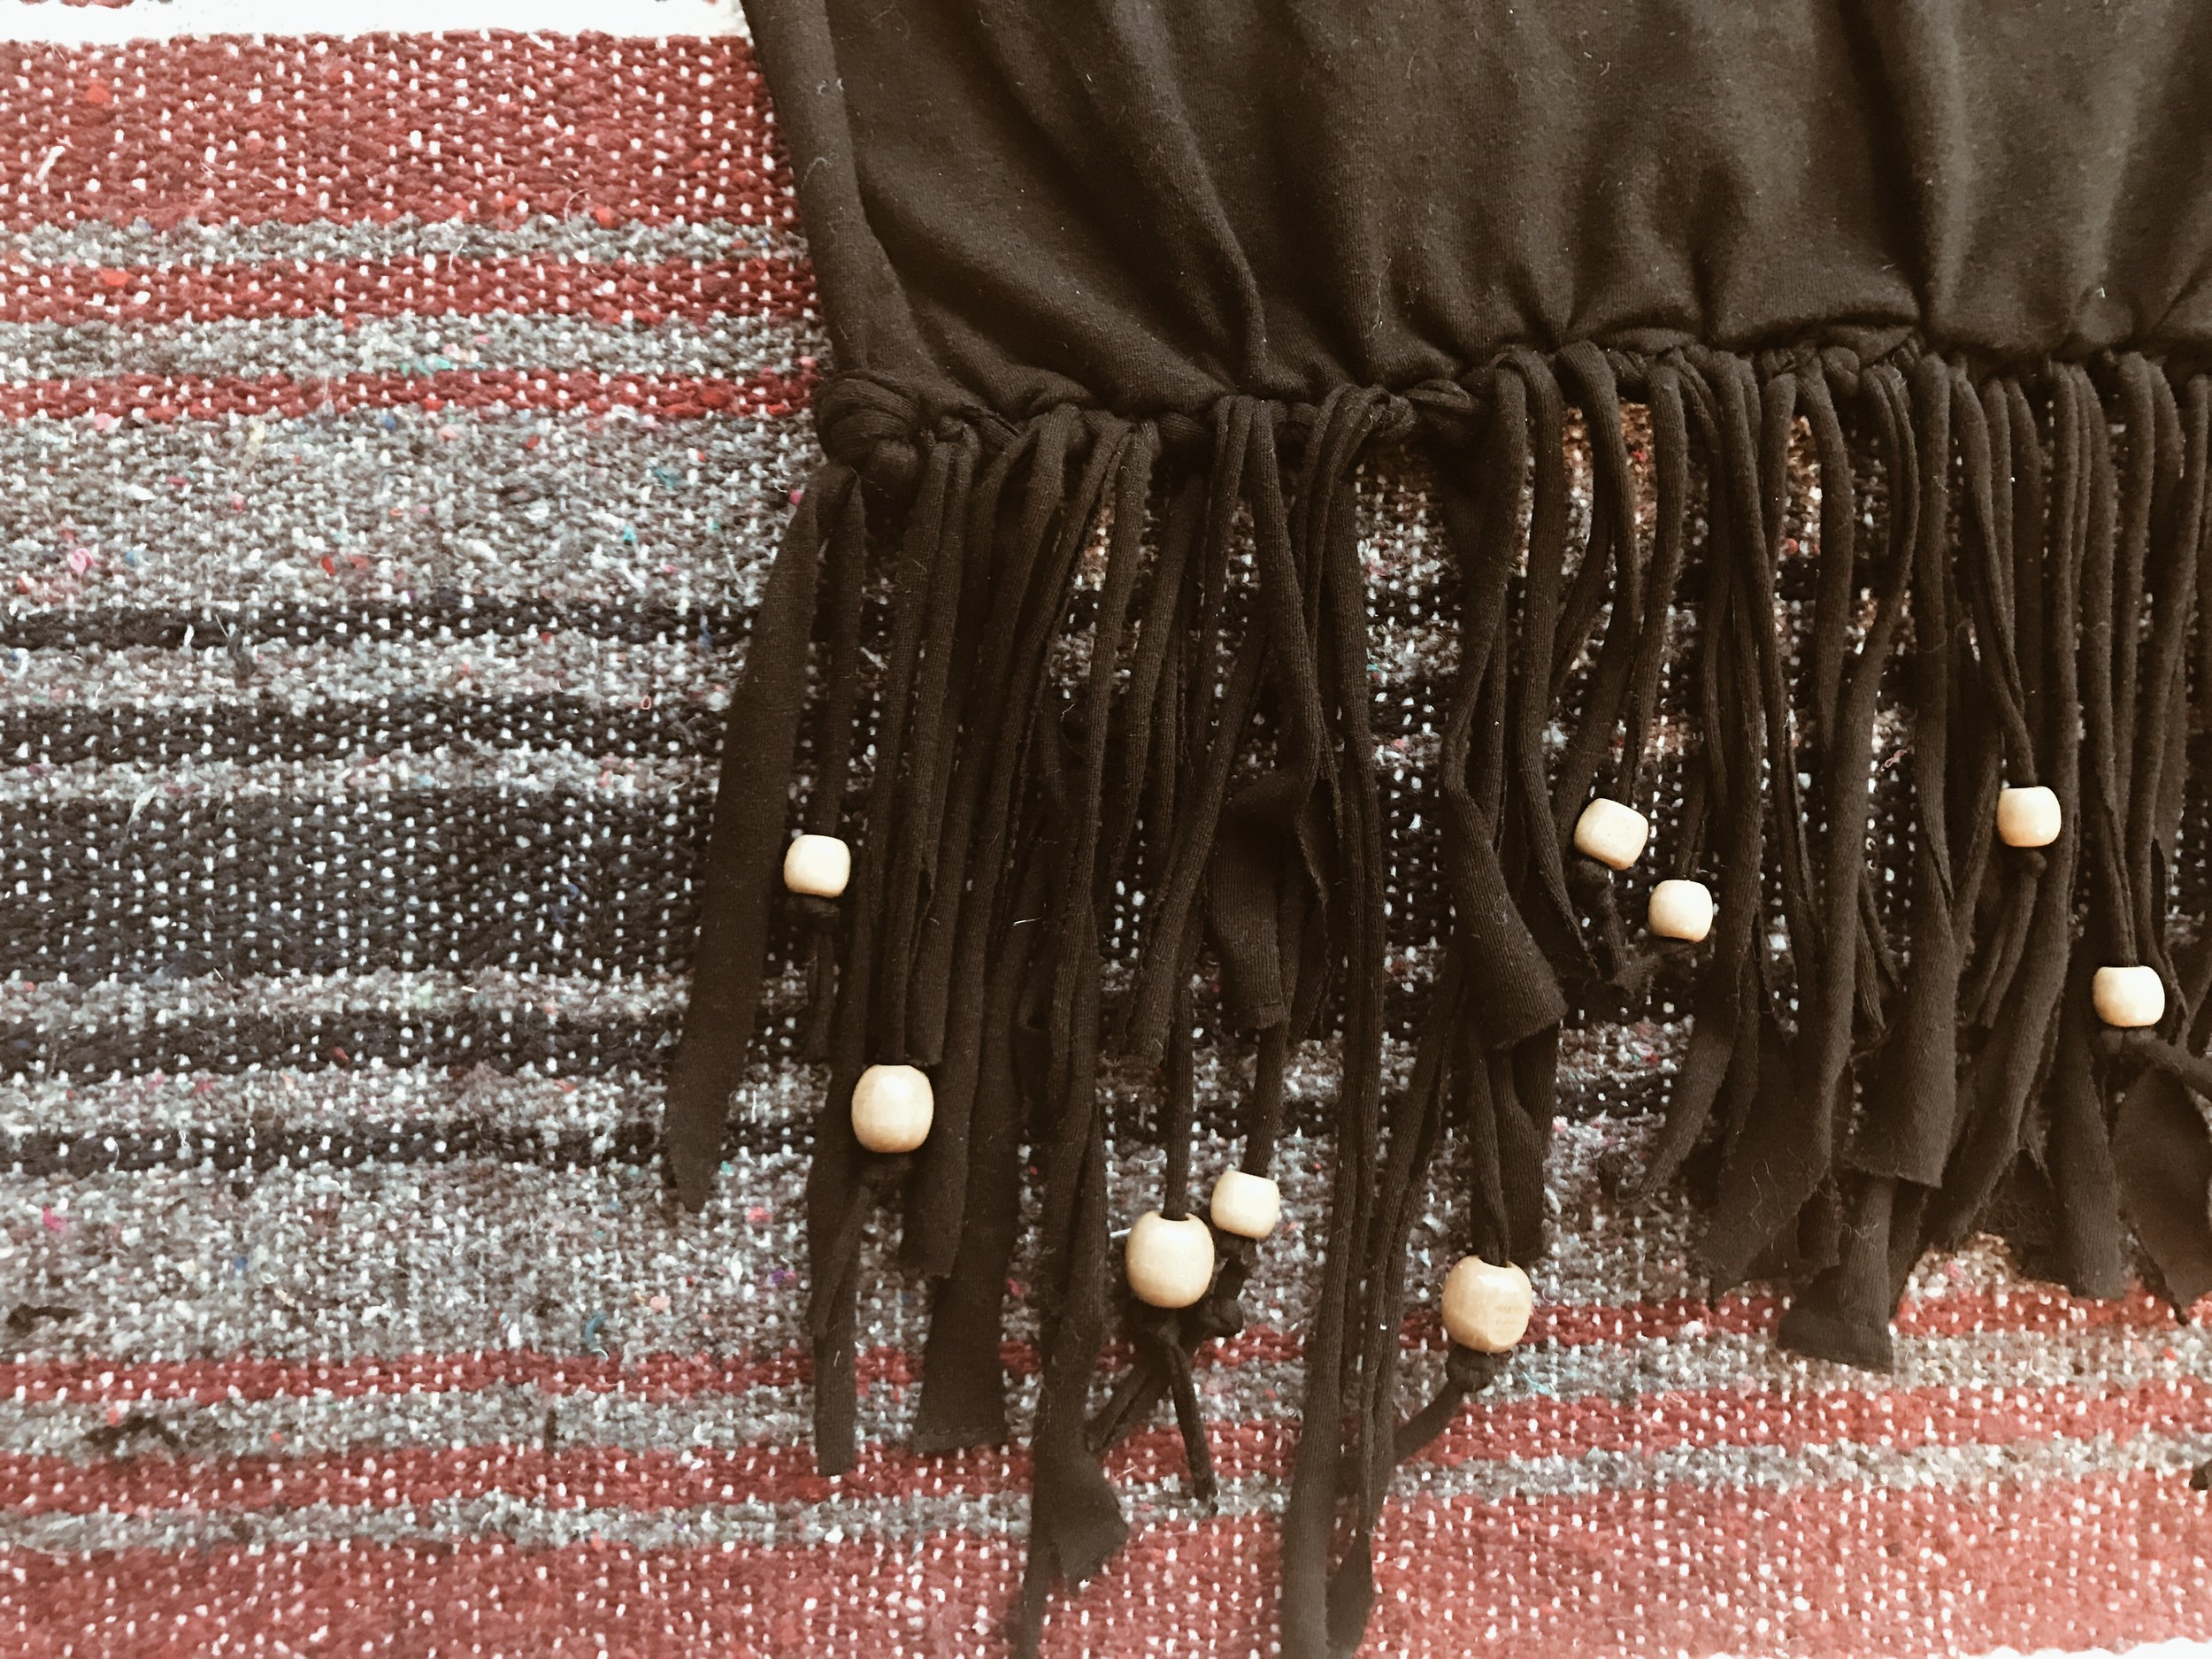 Embellish your bag by adding beads to the bottom fringe! Wooden beads are my favorite, but you can use any kind! Simply slip them on, and tie a knot at the bottom of the strip so the bead stays on!